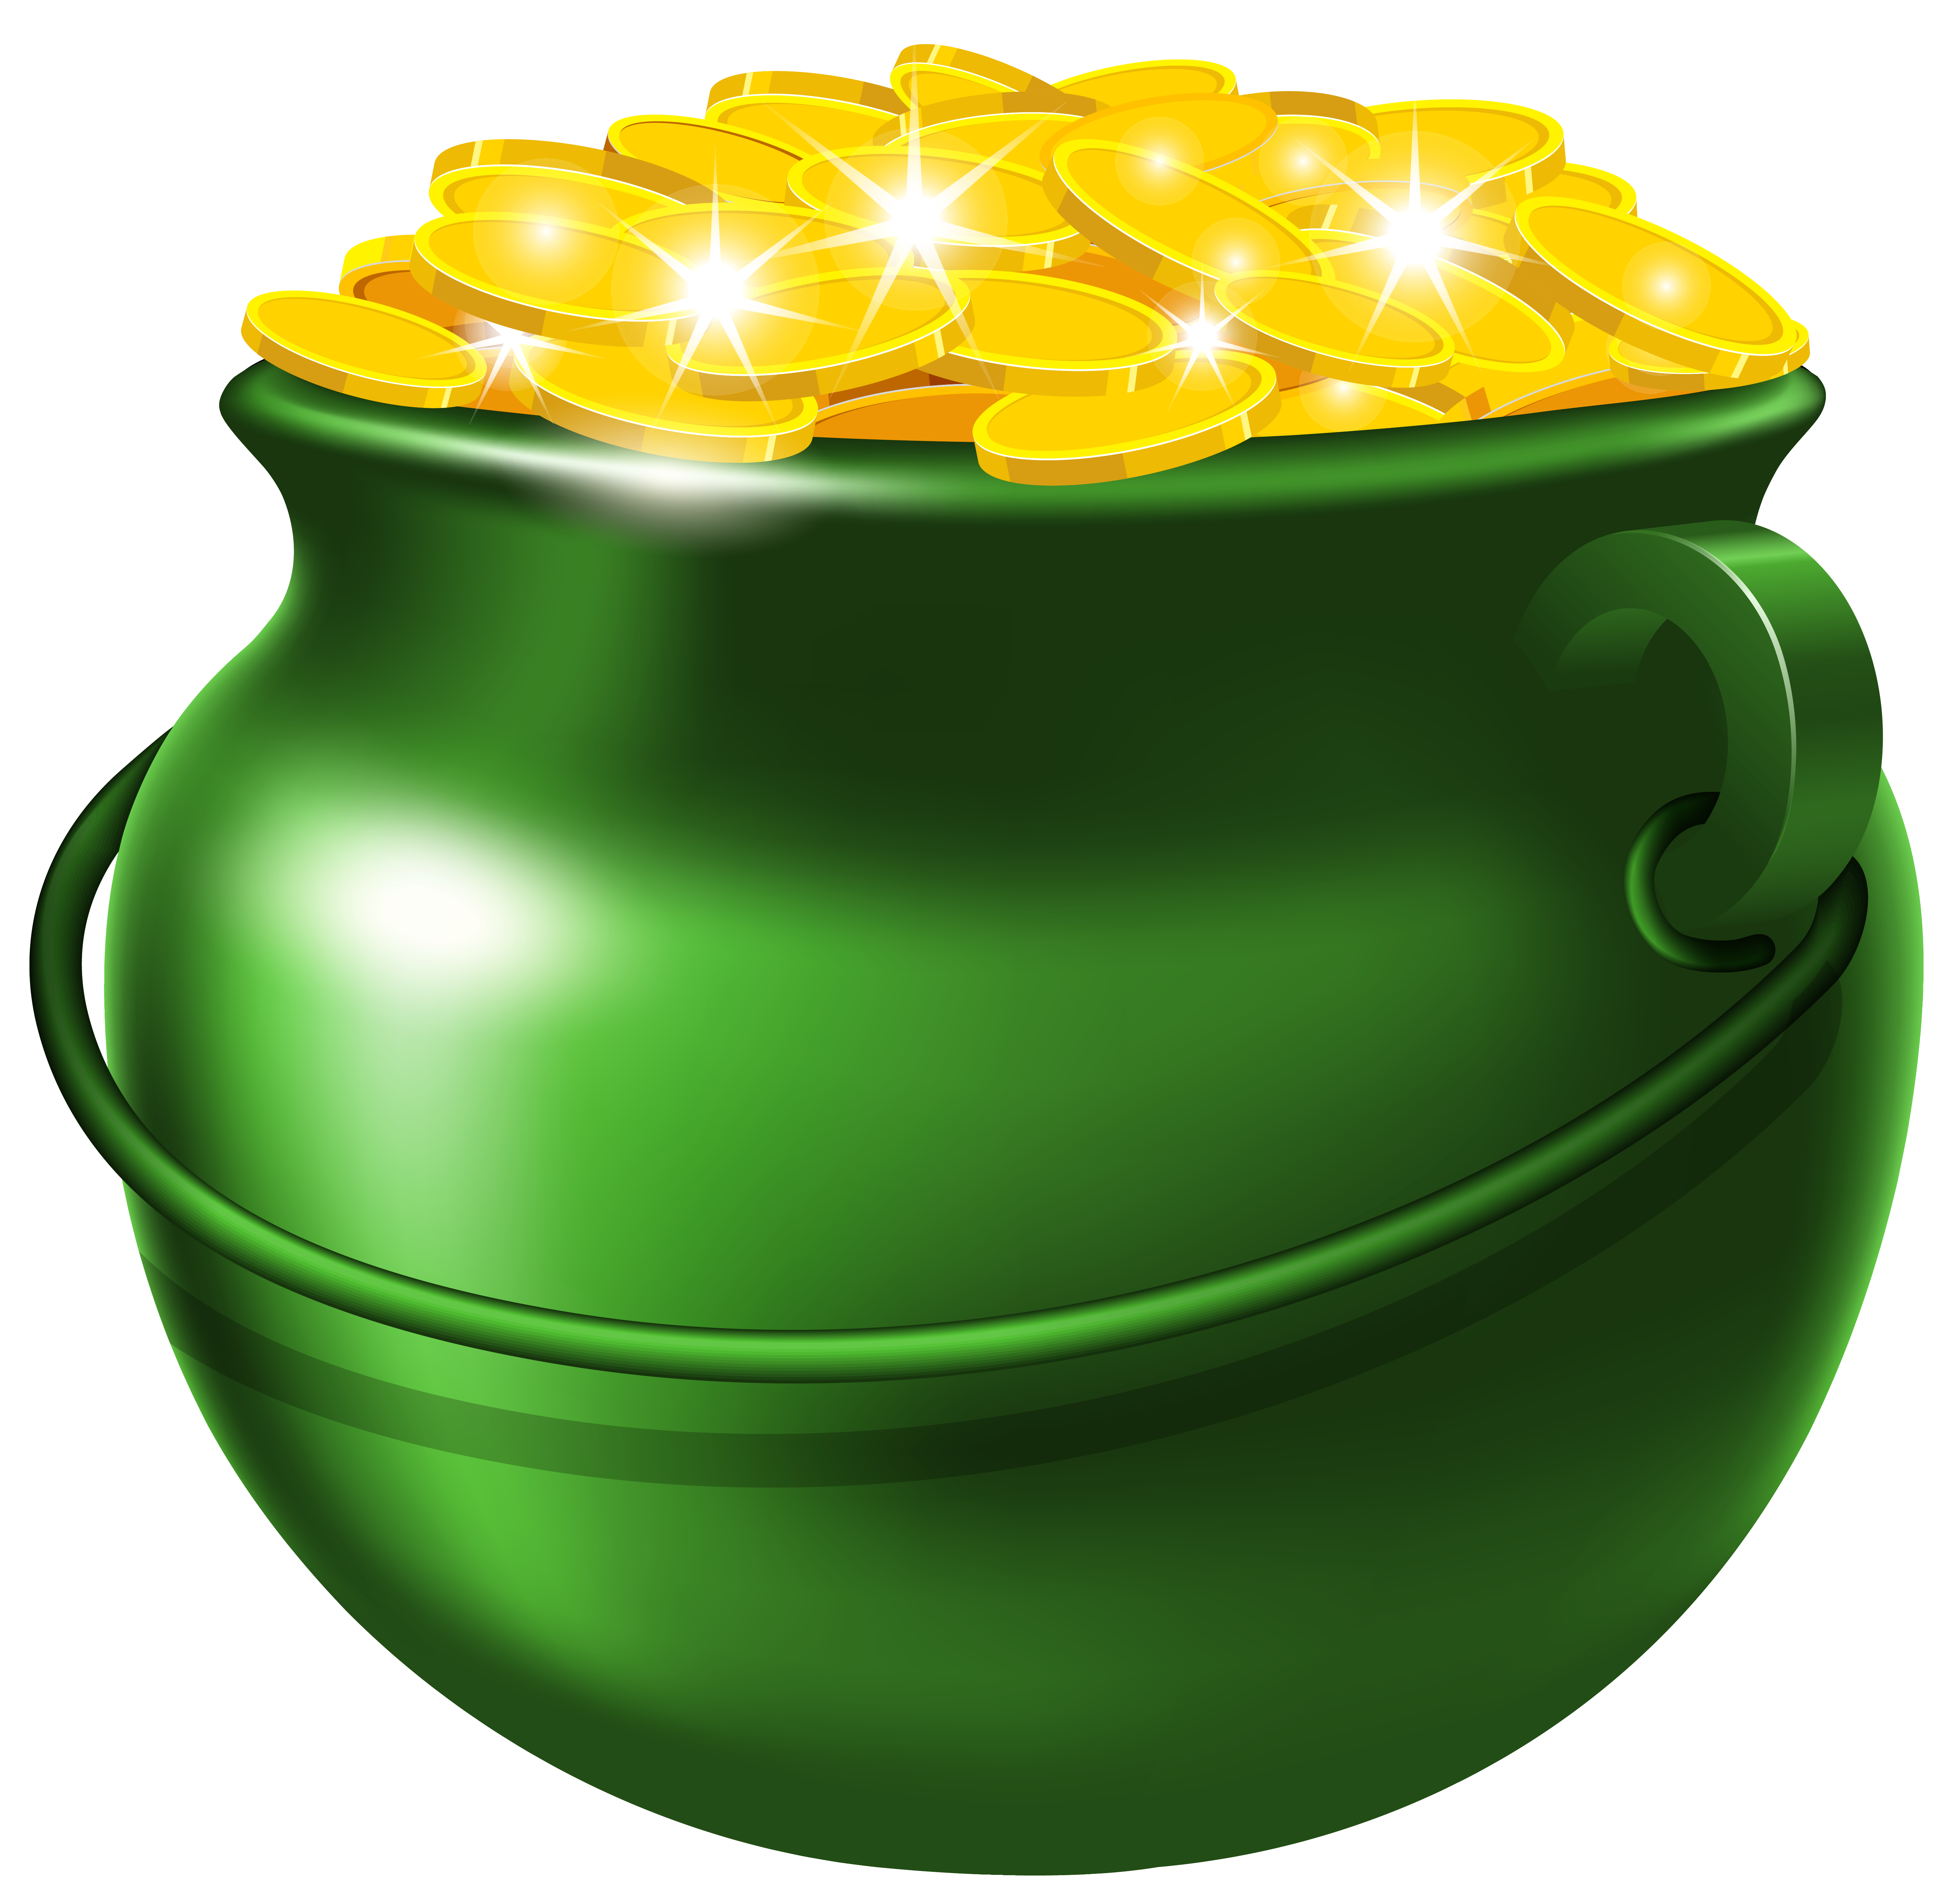 gold clipart. View full size